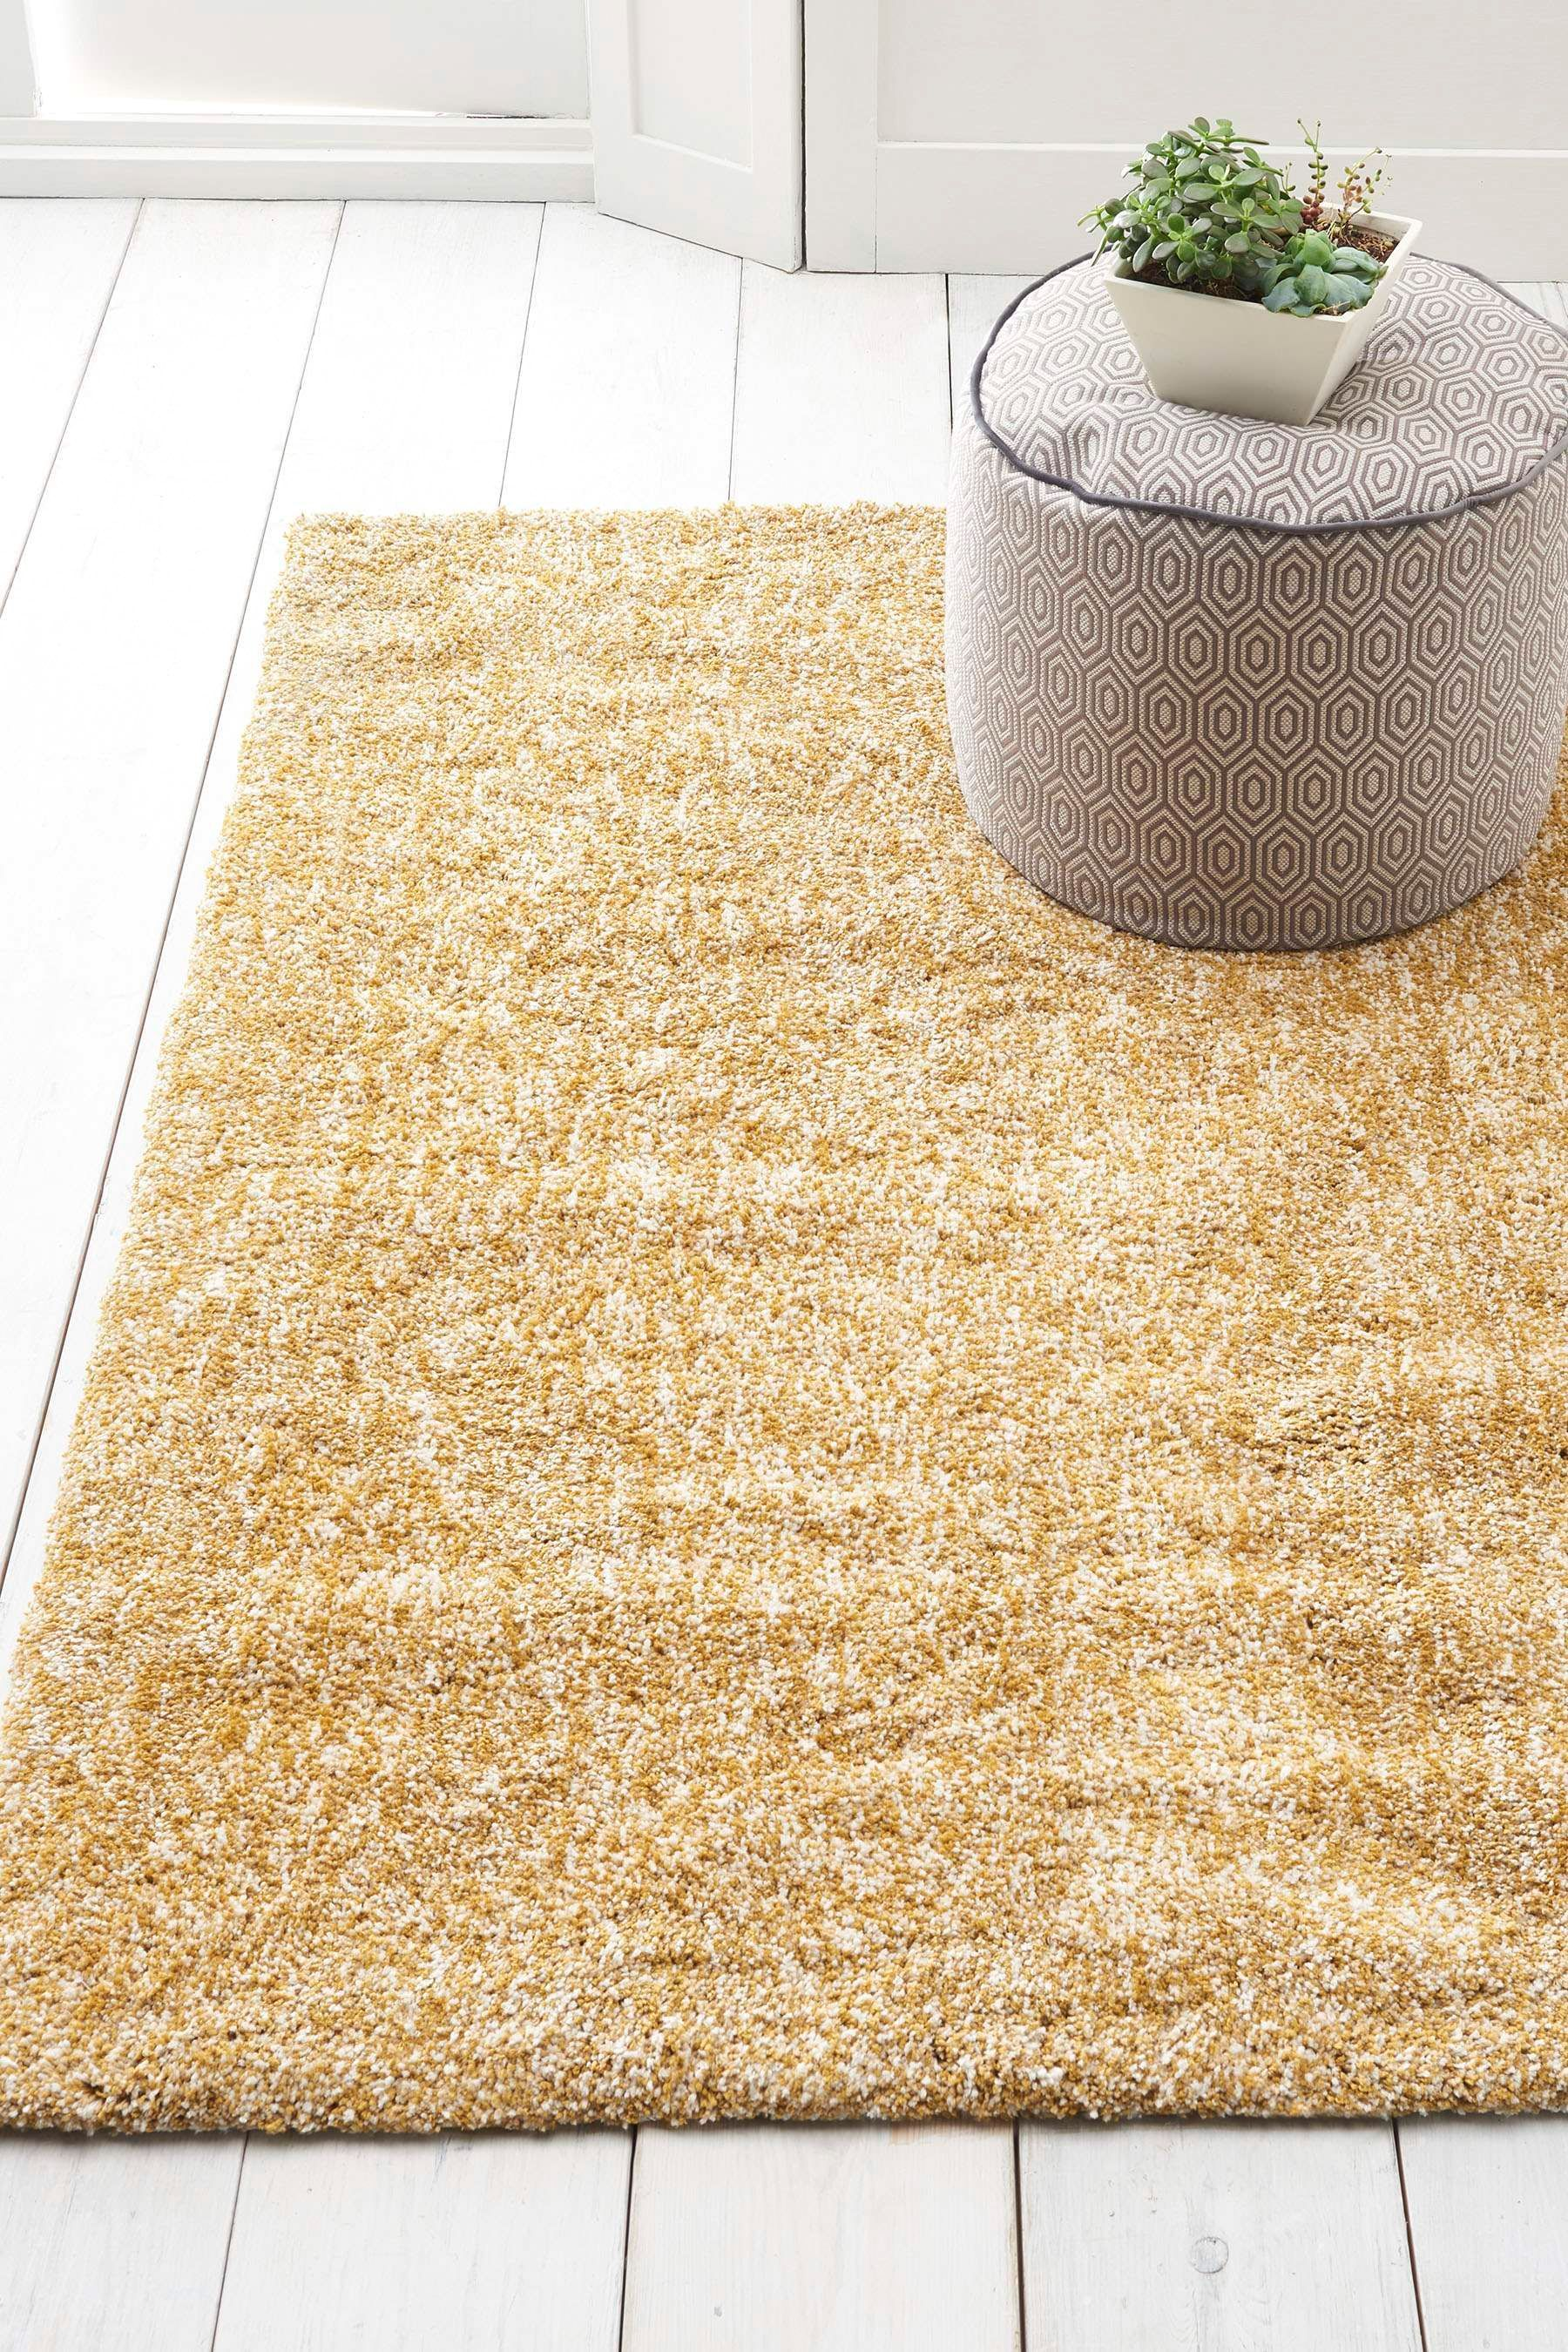 Soft Speckle Rug From The Next Uk Online